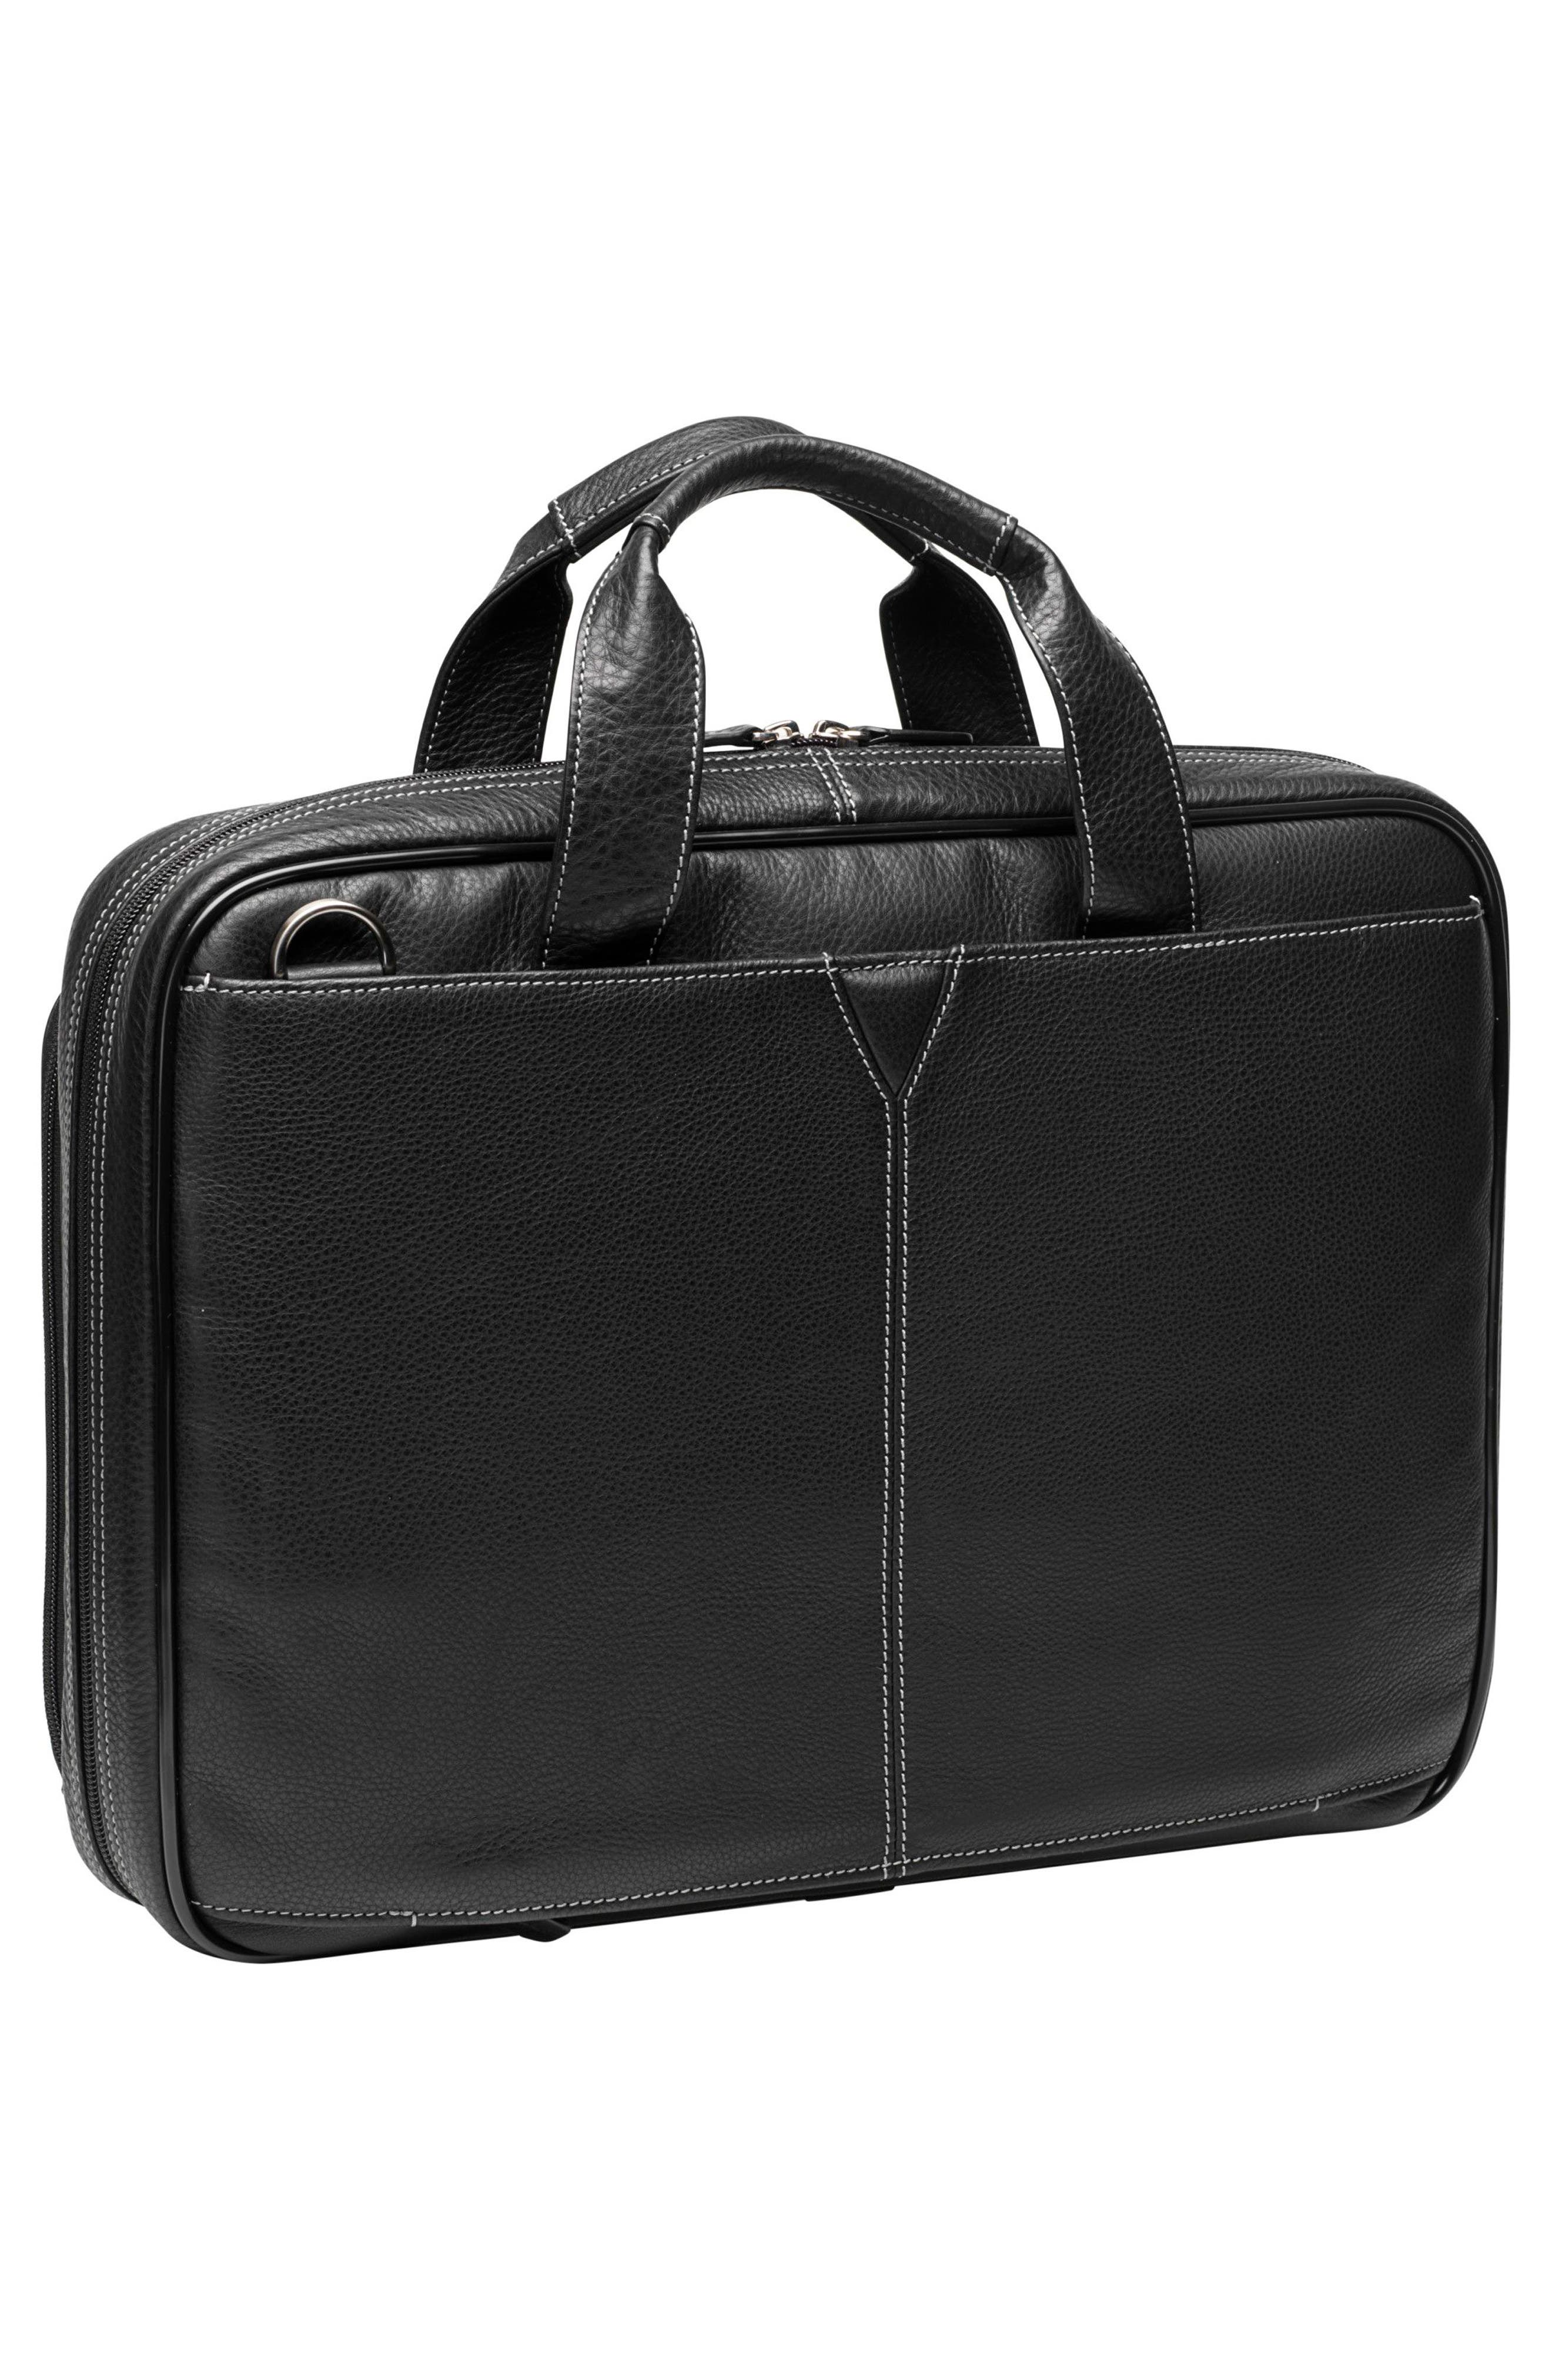 JOHNSTON & MURPHY, Leather Briefcase, Alternate thumbnail 2, color, BLACK